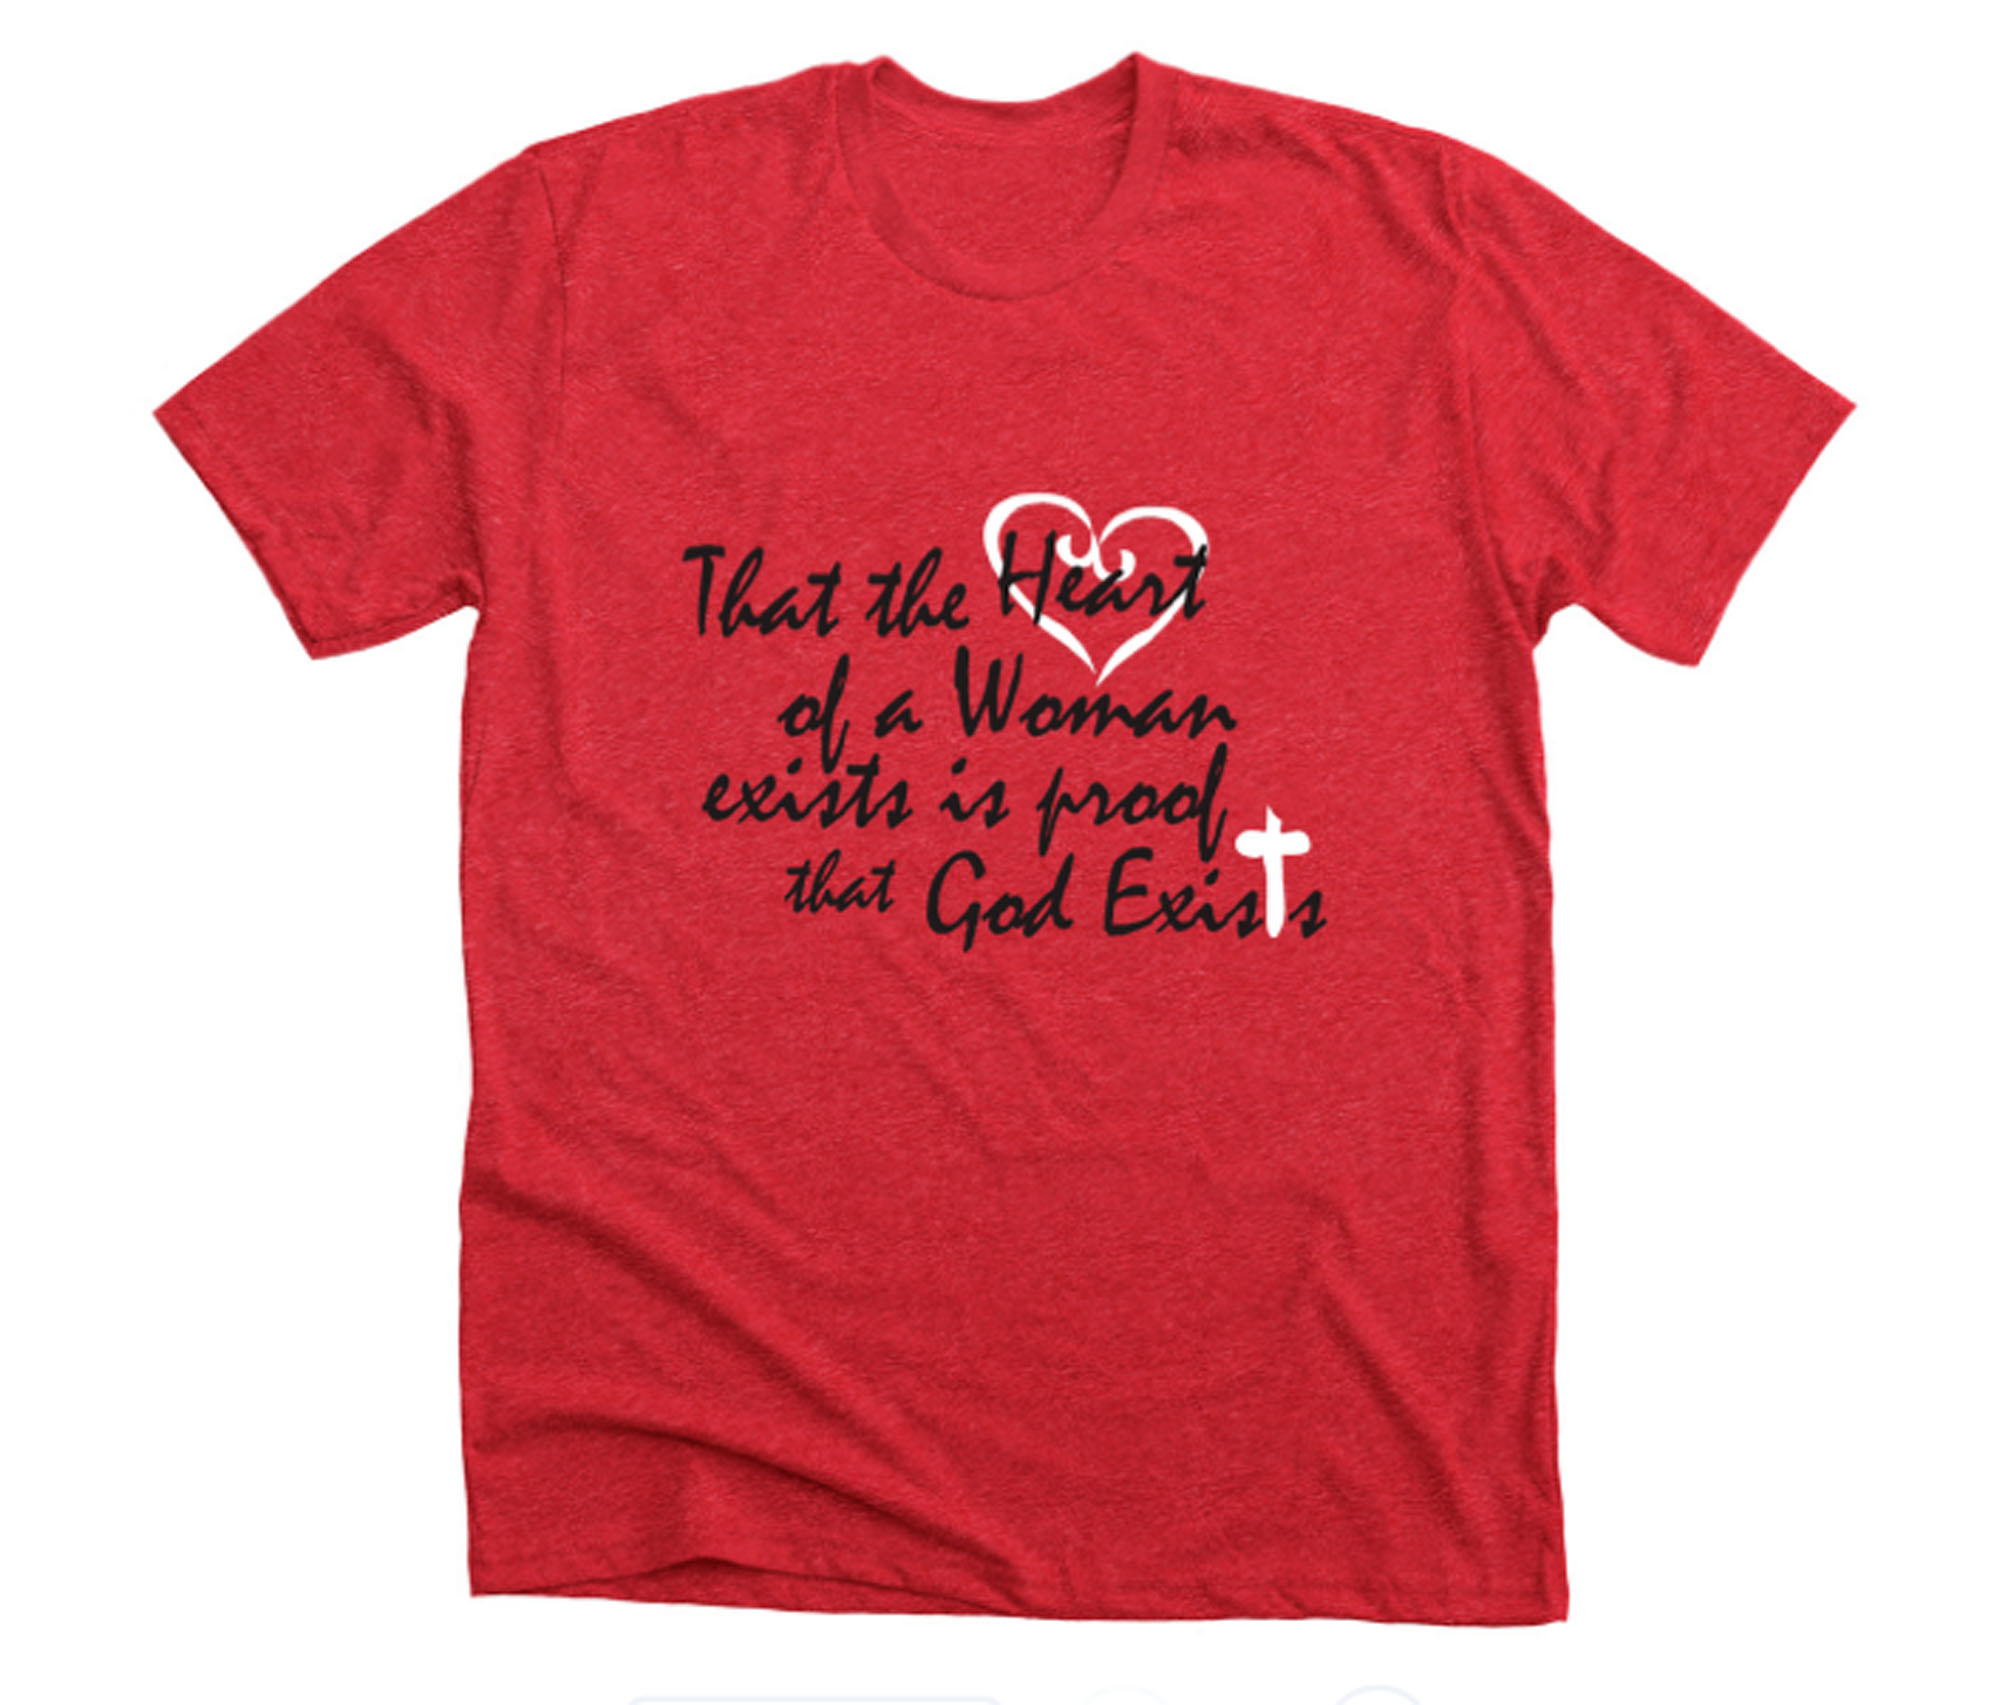 Image of a t-shirt with a message.